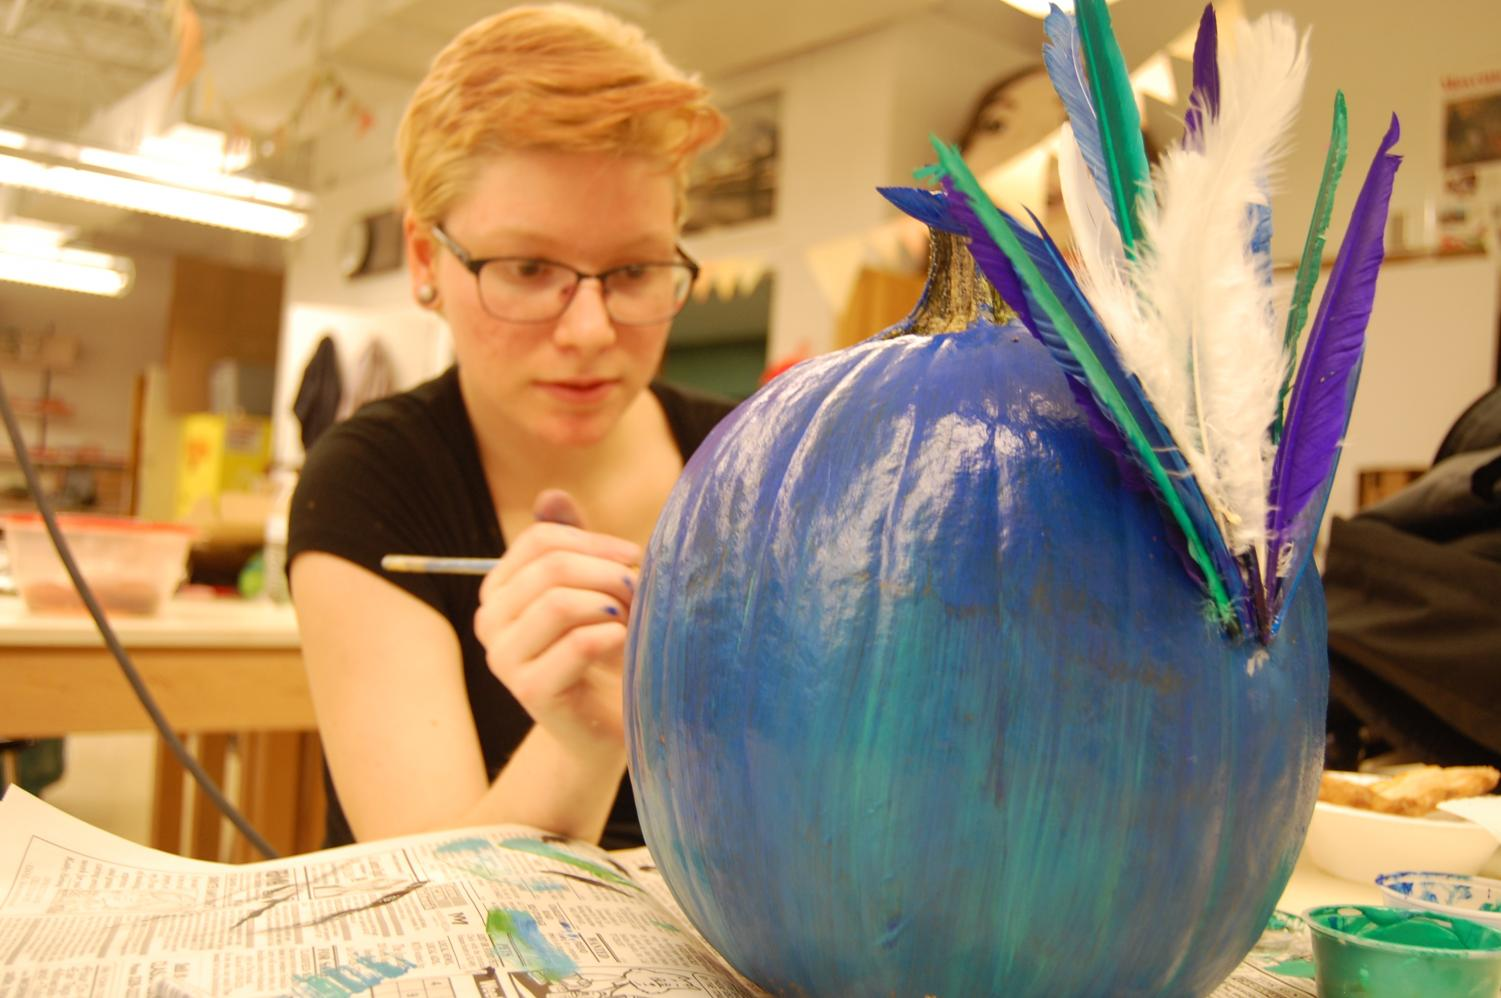 To add to the peacock on her pumpkin, Trinity Myers (12) adds feathers to emphasize the birds most noticeable trait.